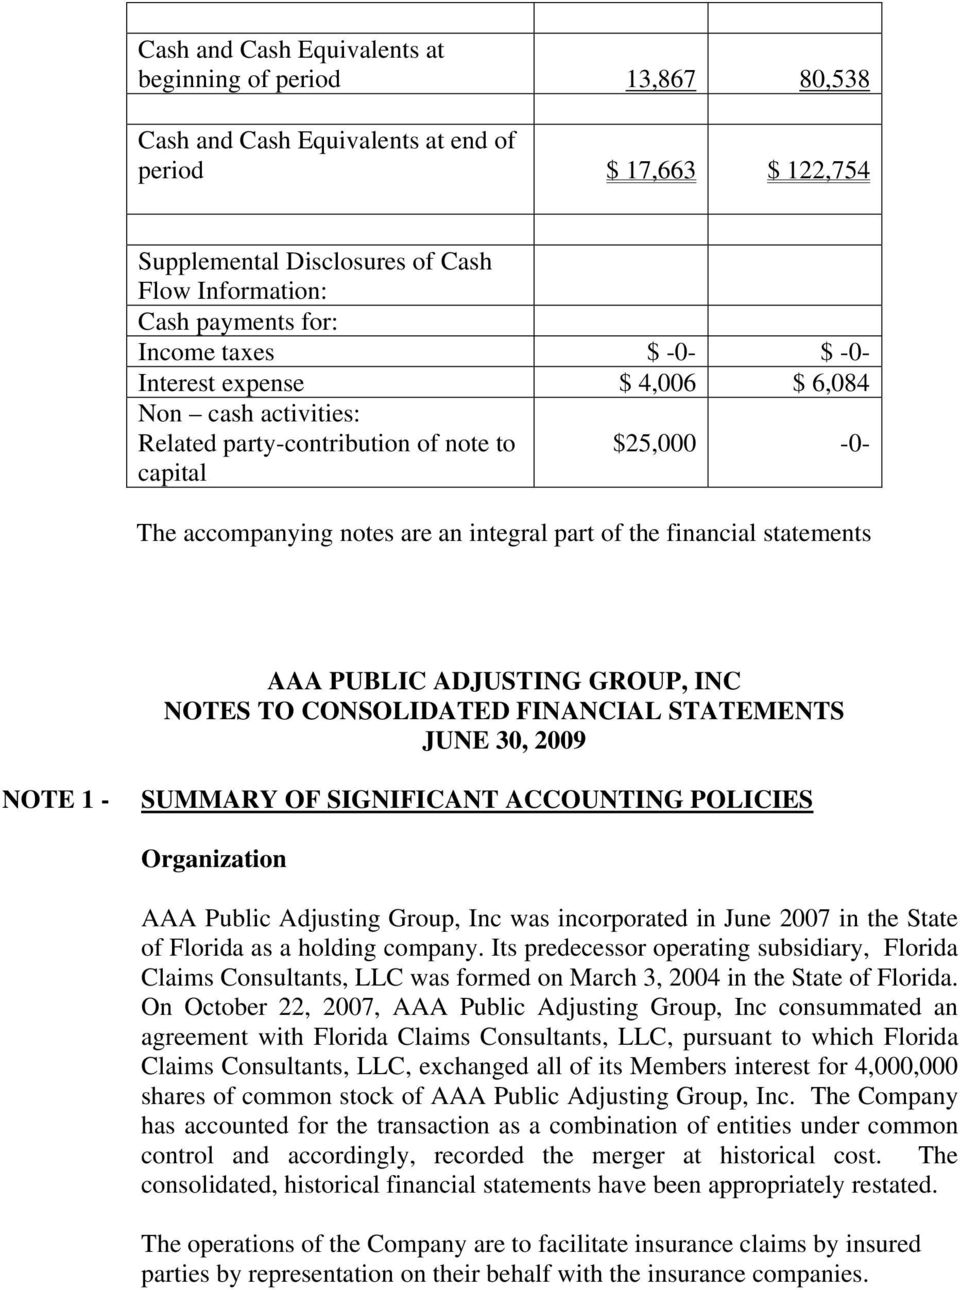 statements AAA PUBLIC ADJUSTING GROUP, INC NOTES TO CONSOLIDATED FINANCIAL STATEMENTS JUNE 30, 2009 NOTE 1 - SUMMARY OF SIGNIFICANT ACCOUNTING POLICIES Organization AAA Public Adjusting Group, Inc